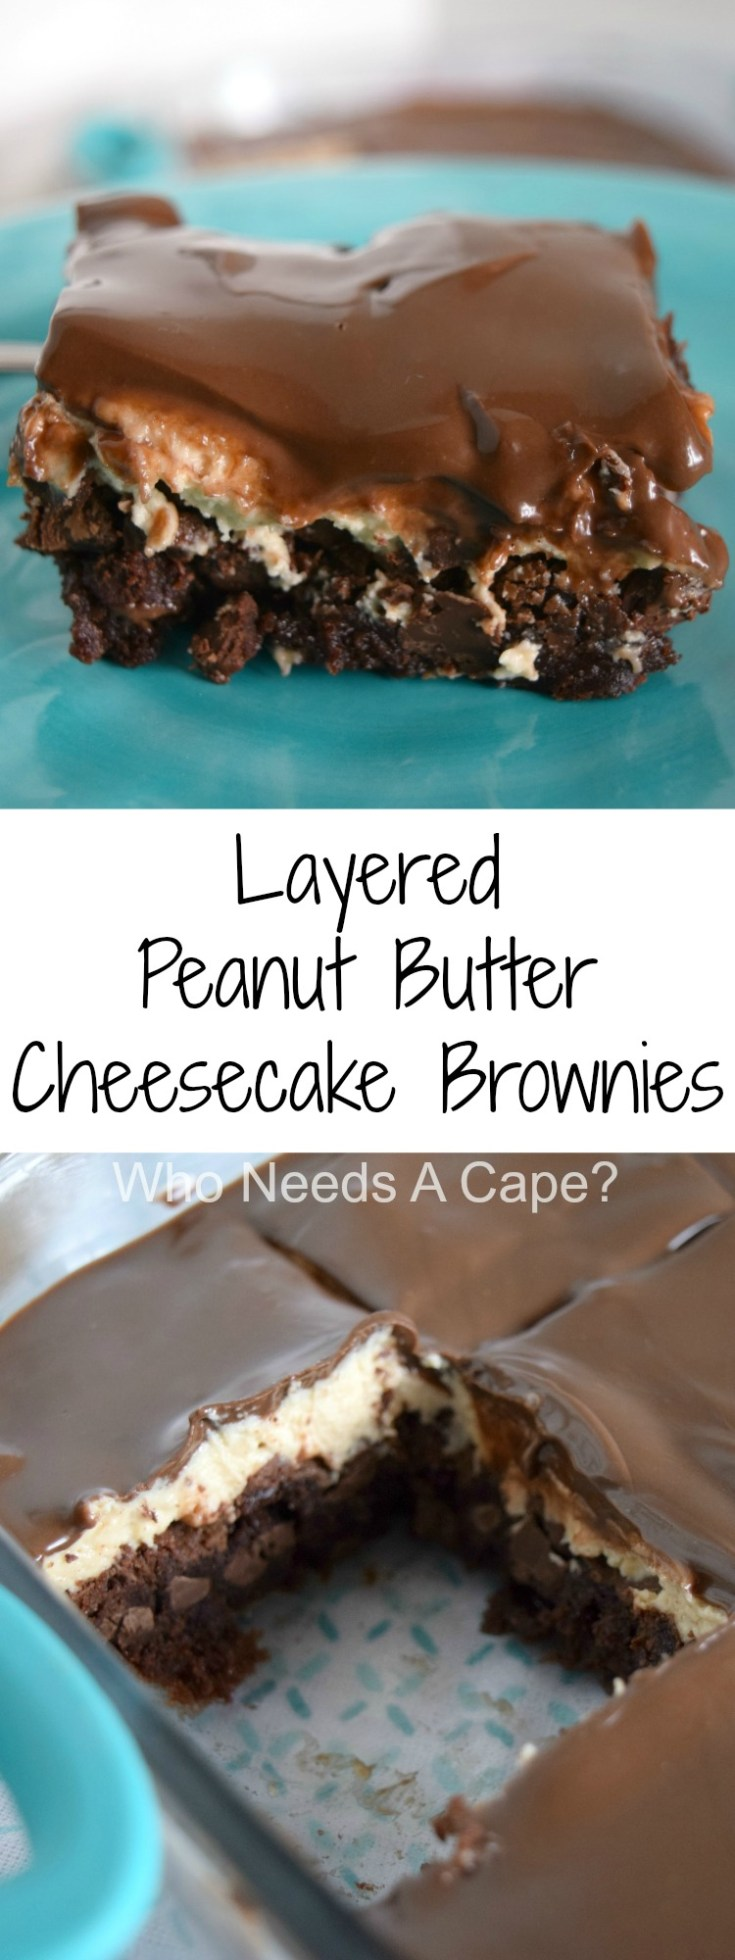 Layered Peanut Butter Cheesecake Brownies can only be described as amazing! Simple to prepare with layers of deliciousness, you'll love the flavor combo.